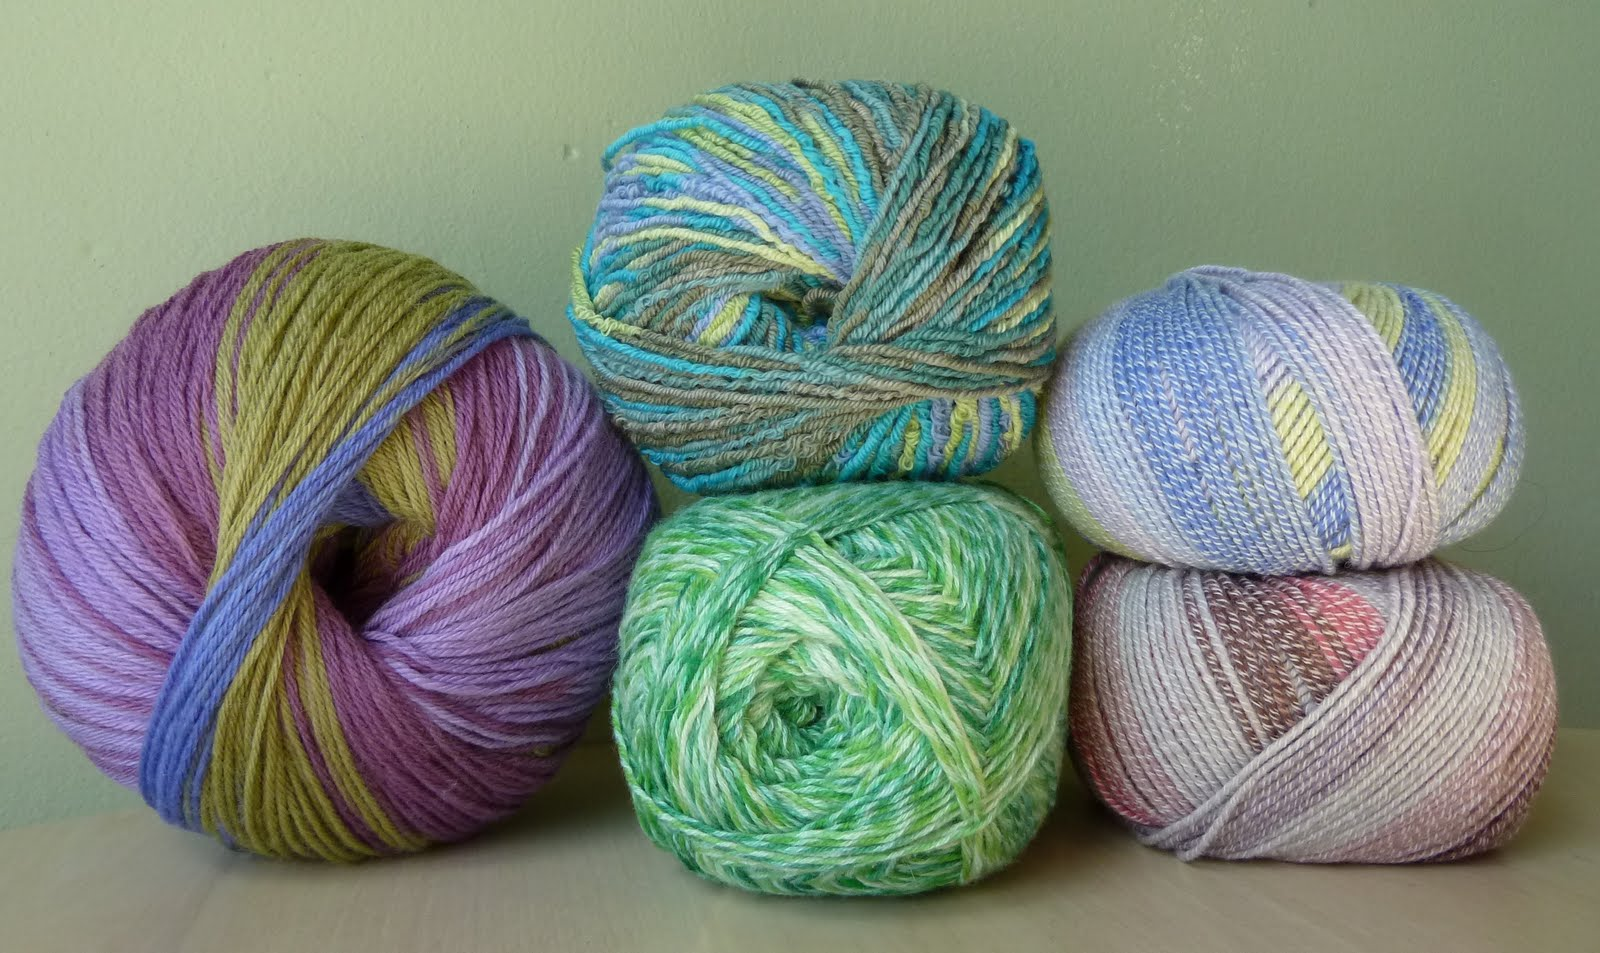 The Yarn Garden Blog: Spring Sock Yarn Sale!